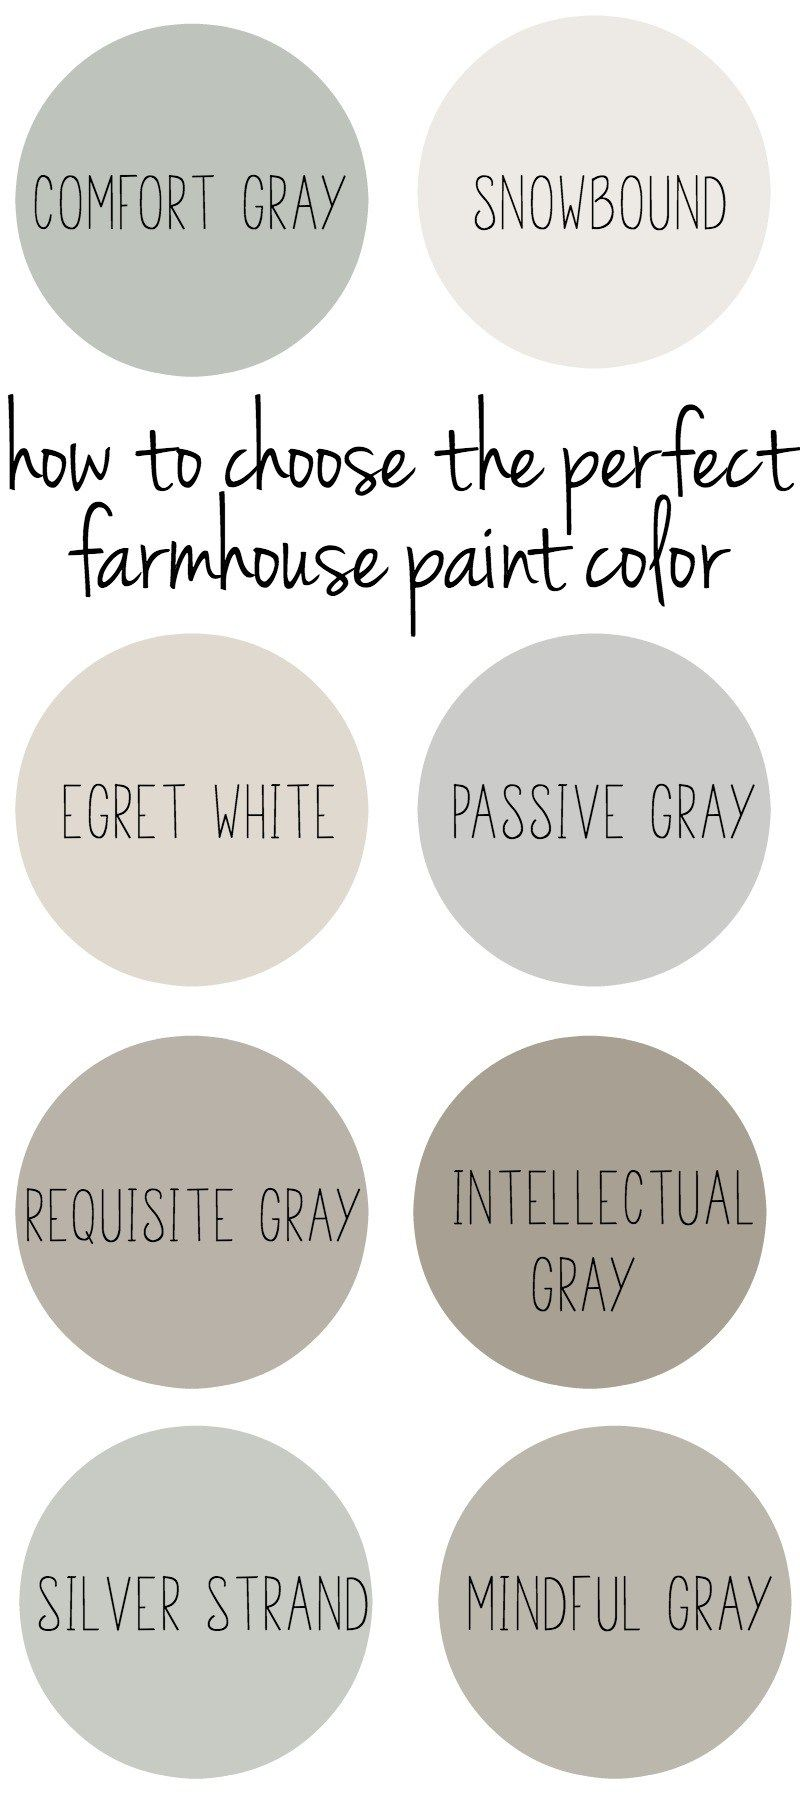 Fixer upper paint colors for kitchens - Fixer Upper Kitchen Paint Colors Fixer Upper Paint Colors Joanna S 5 Favorites Repose Gray